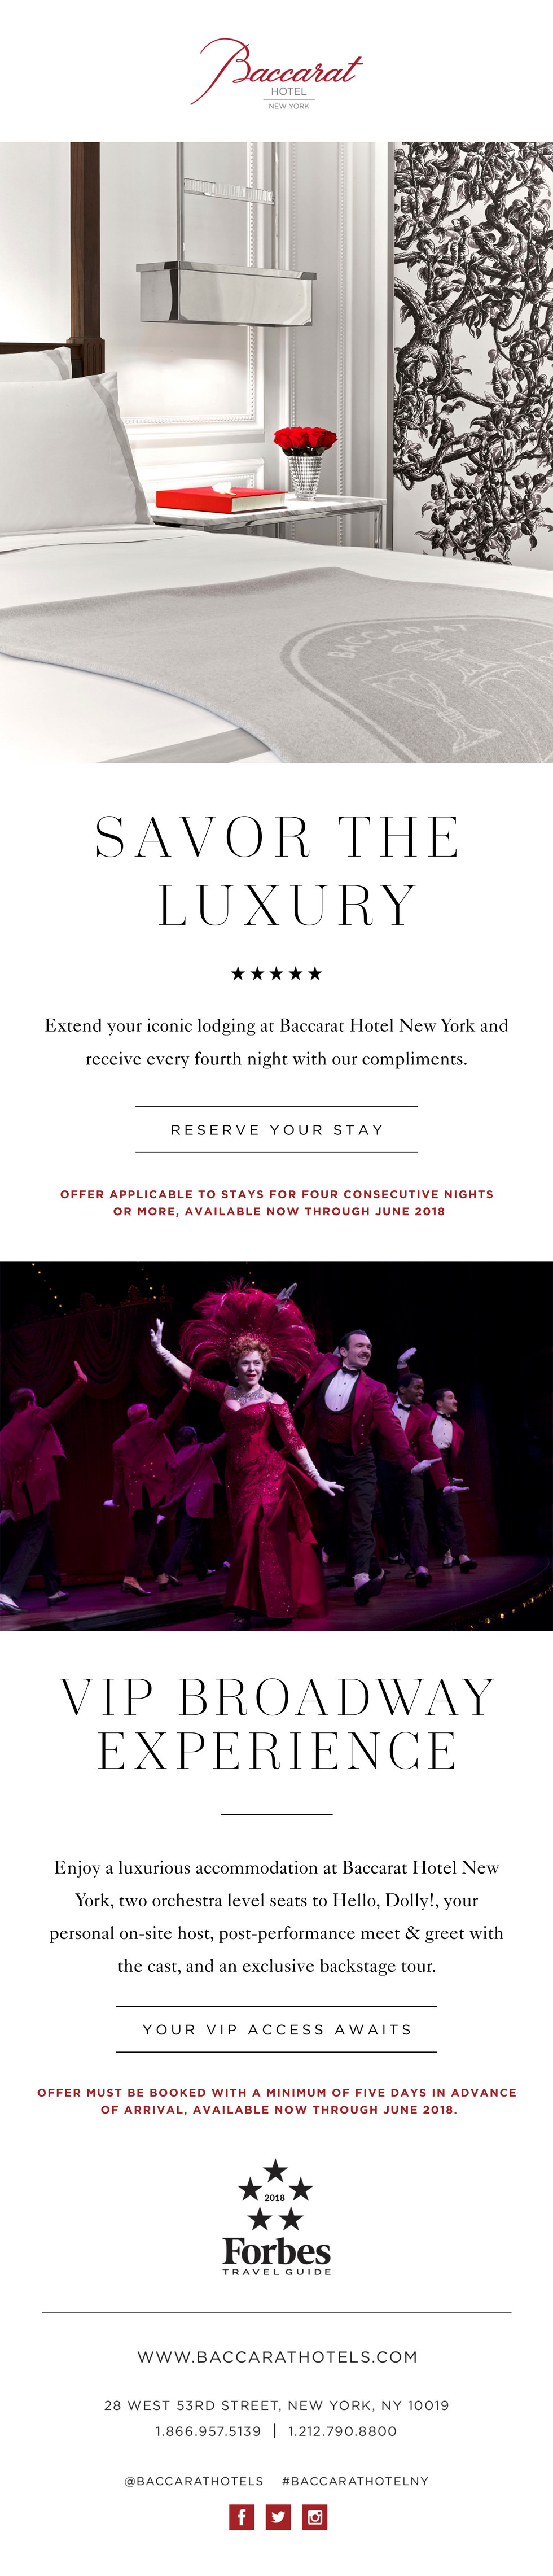 Baccarat Hello Dolly.jpg